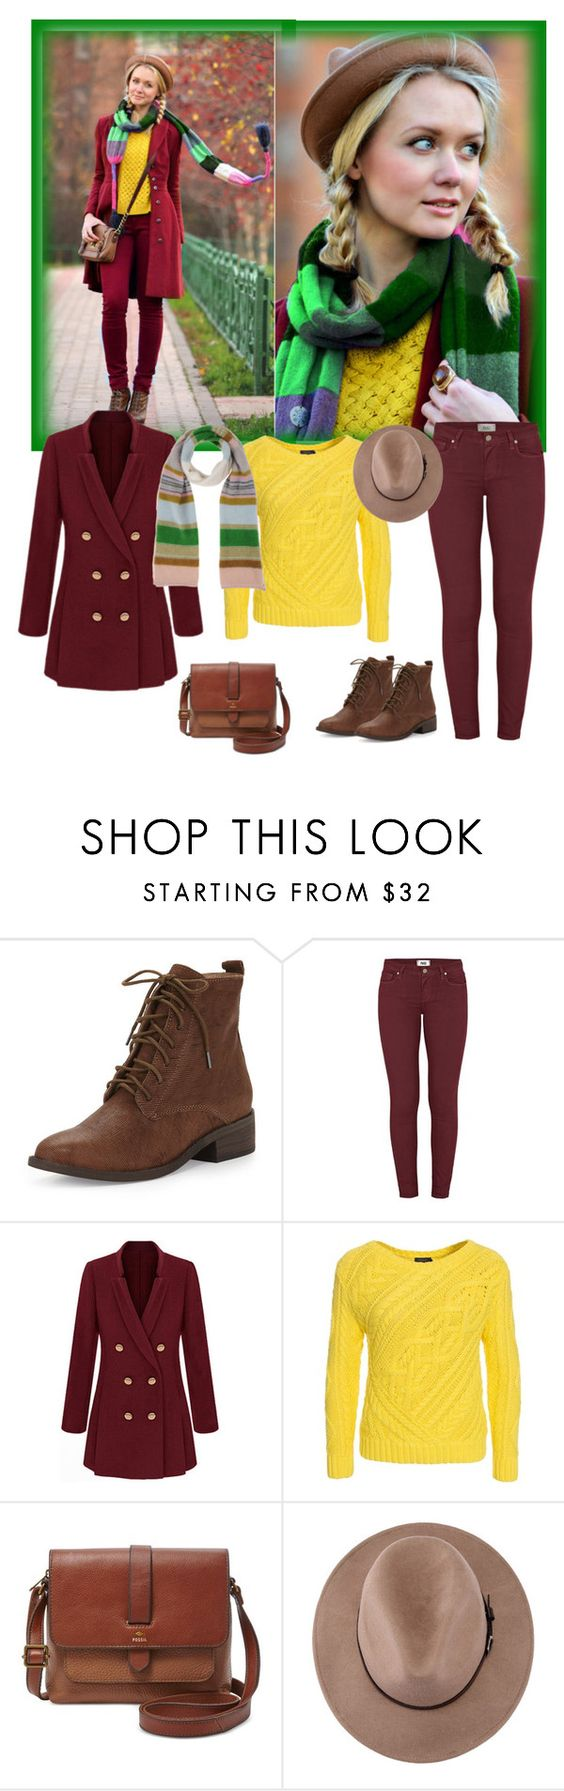 """""""Untitled #1198"""" by ruru833 ❤ liked on Polyvore featuring Eileen Fisher, Paige Denim, Polo Ralph Lauren, FOSSIL, Missoni, women's clothing, women, female, woman and misses"""